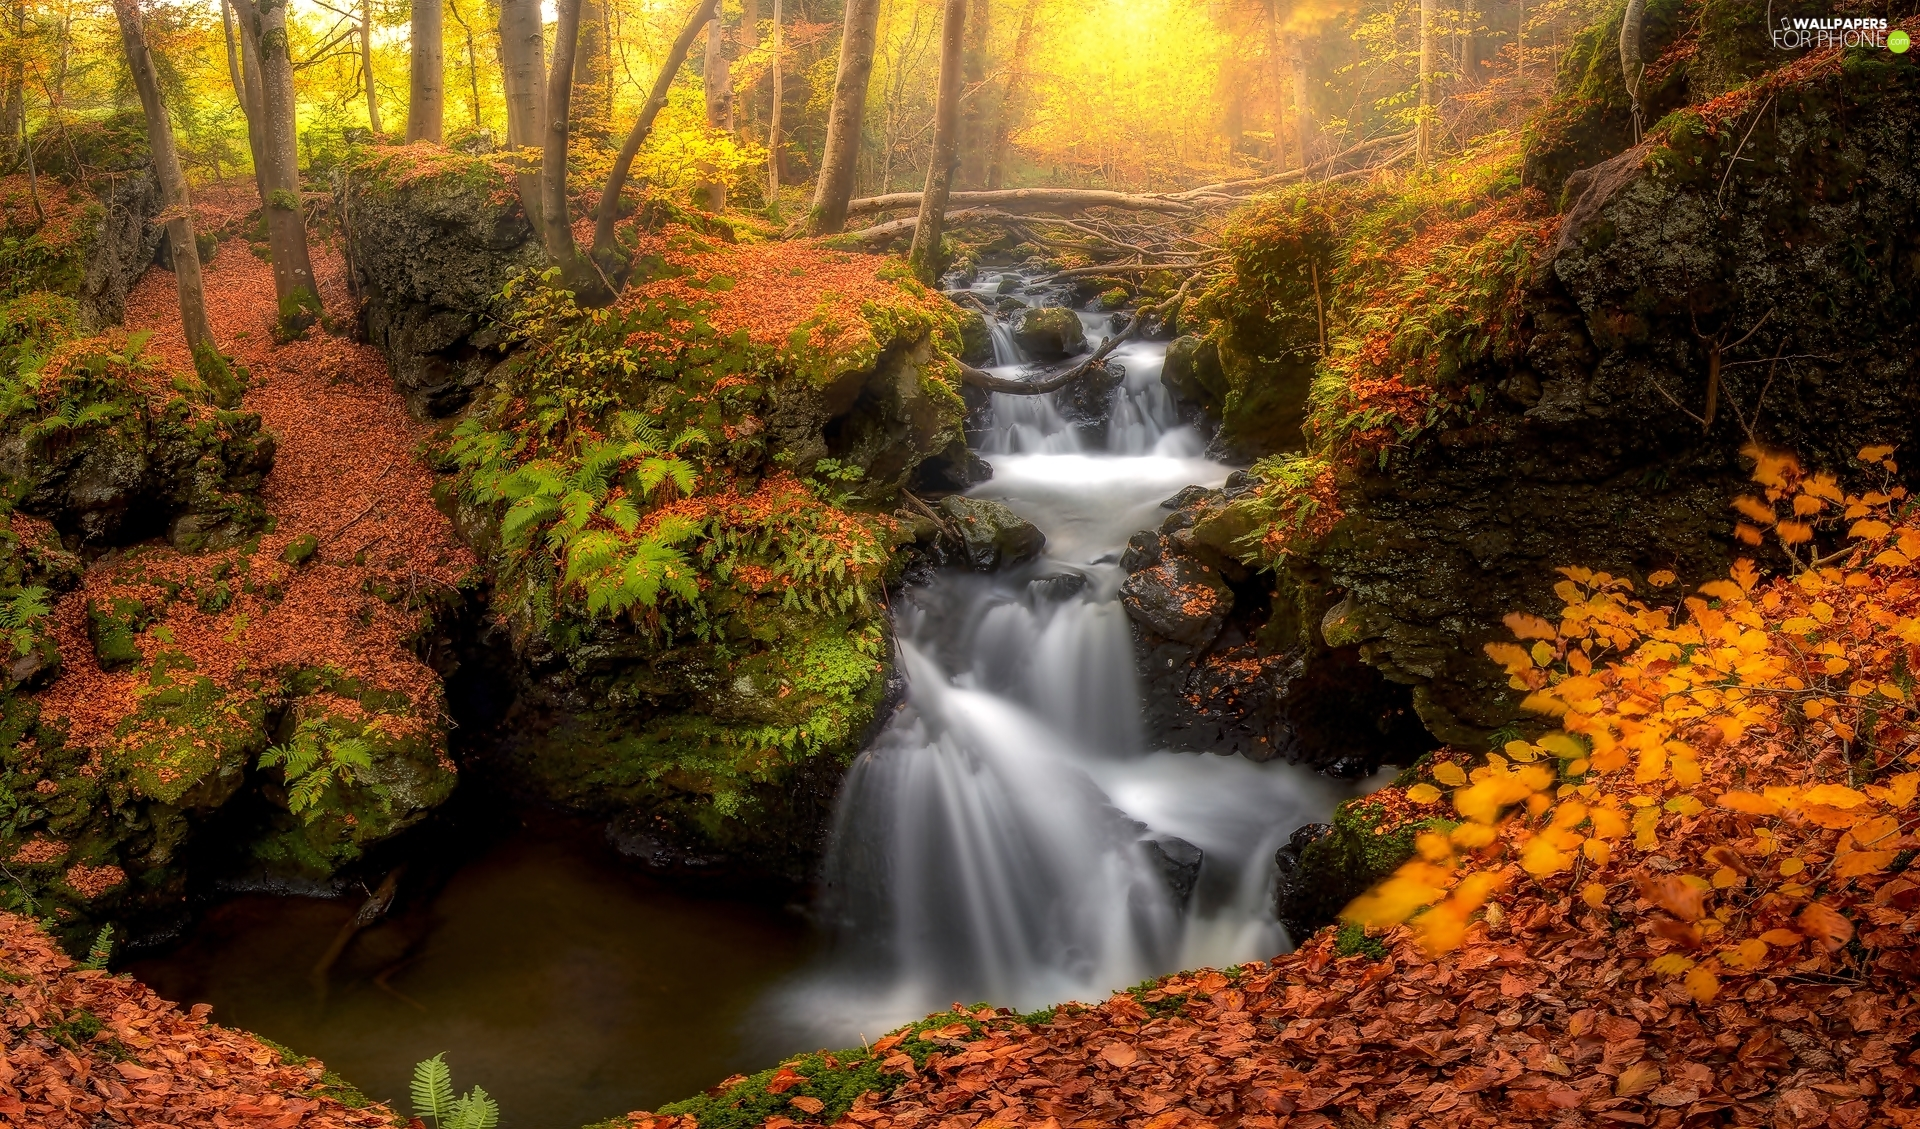 forest, waterfall, trees, viewes, Leaf, autumn, Stones, fallen, rocks